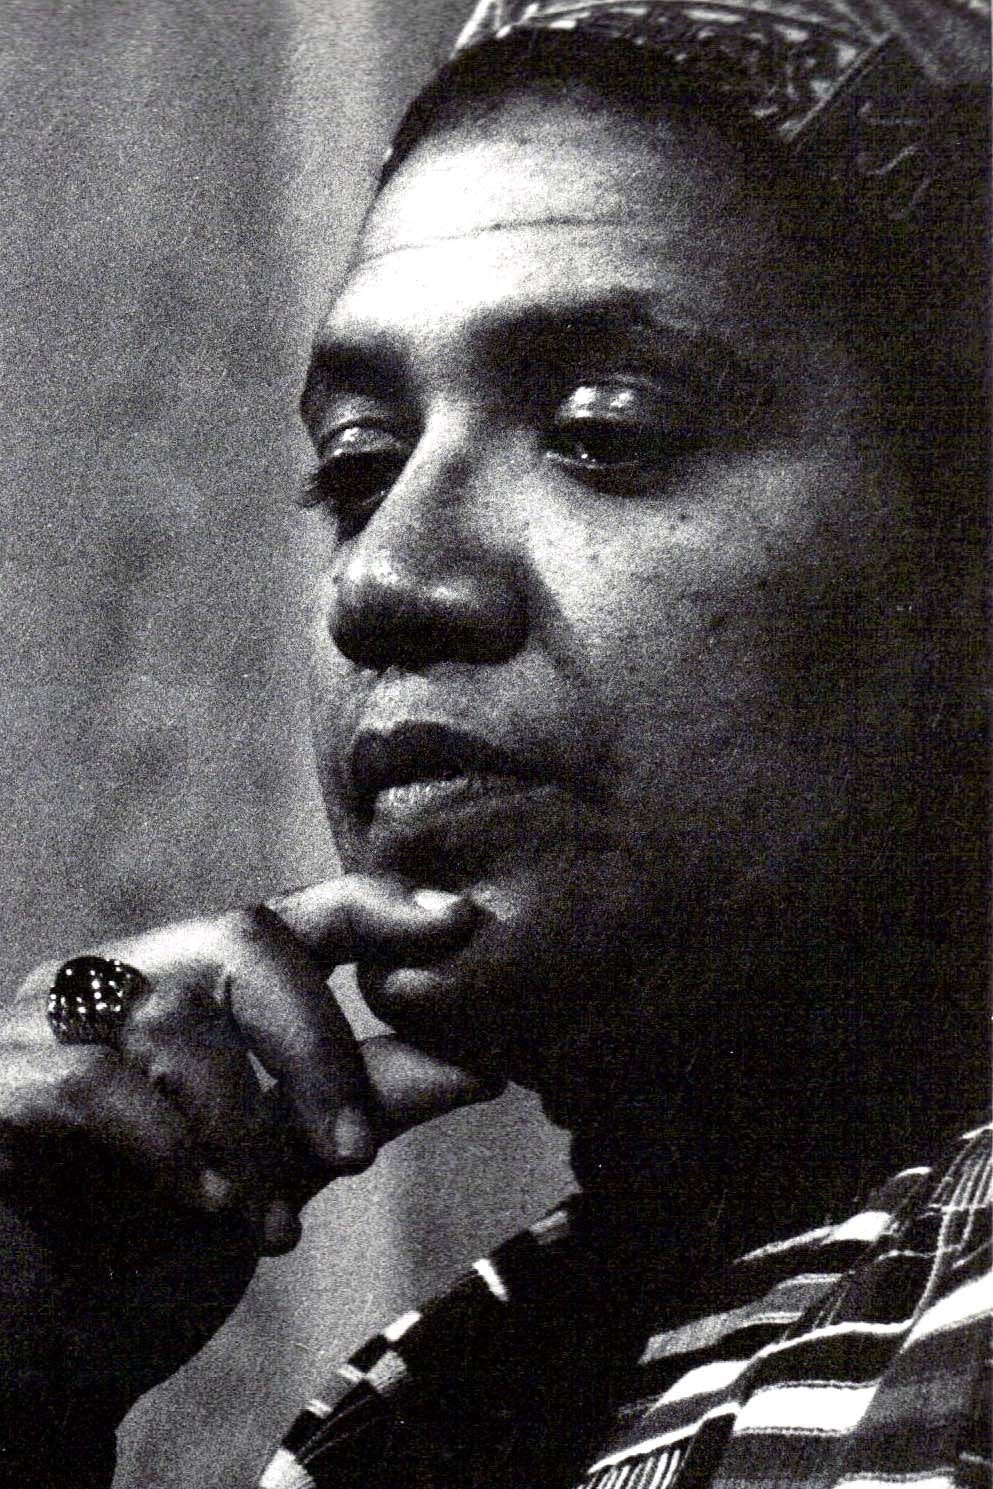 Audre Lorde